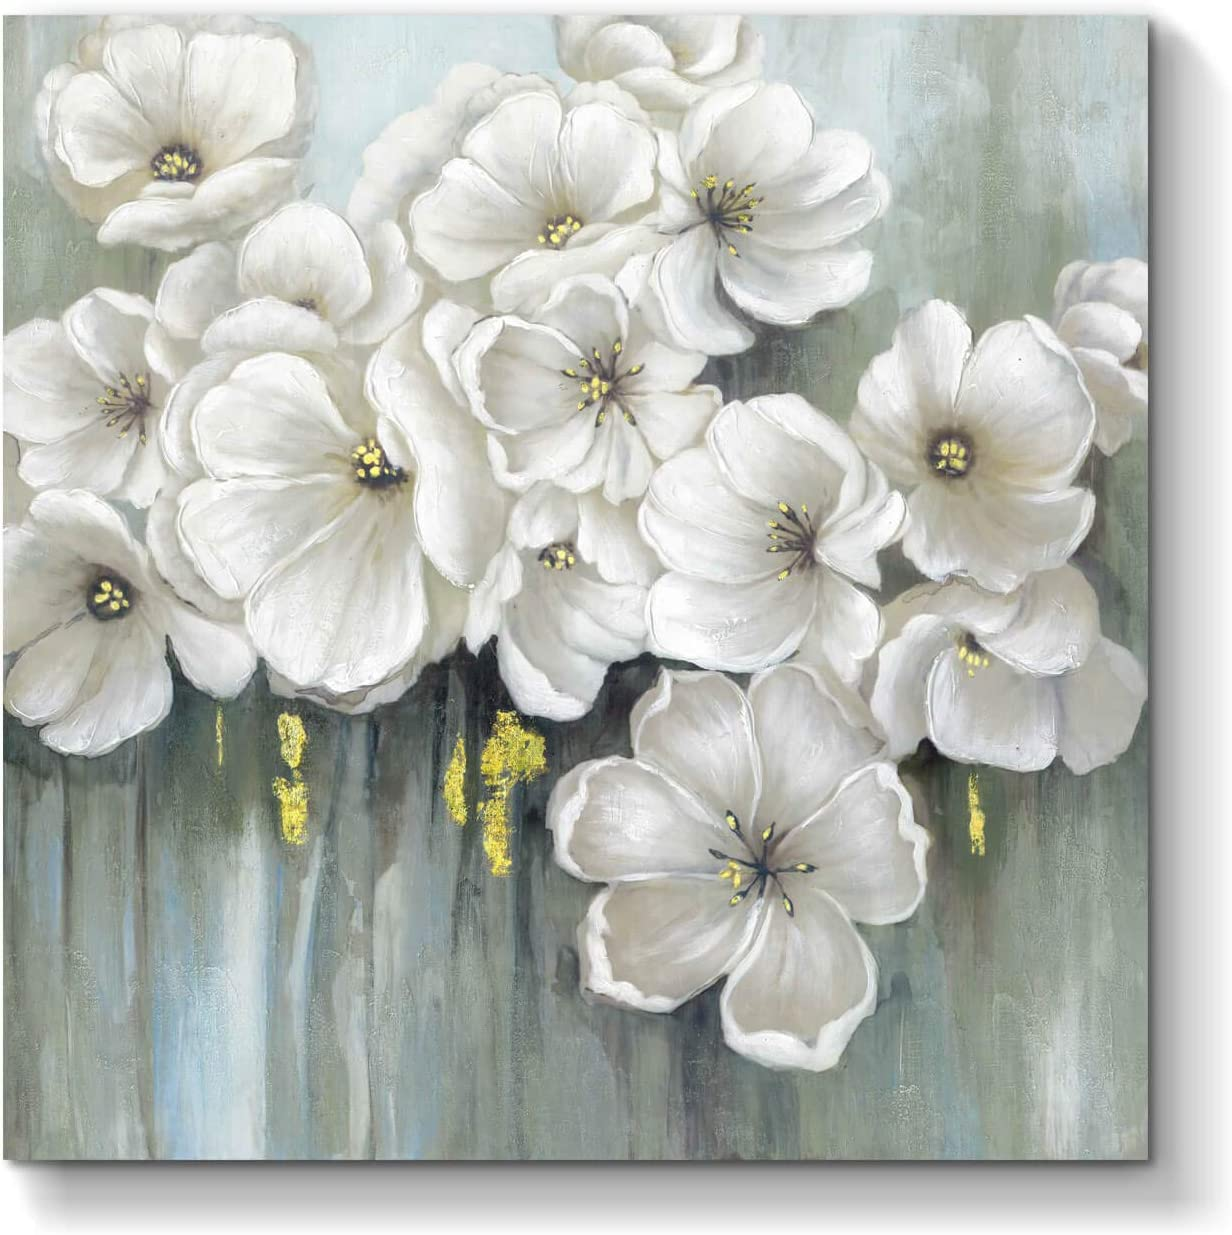 Abstract Flower Picture Wall Art Floral Artwork Blossom Painting Print On Canvas For Dining Room 28 X 28 X 1 Panel Posters Prints